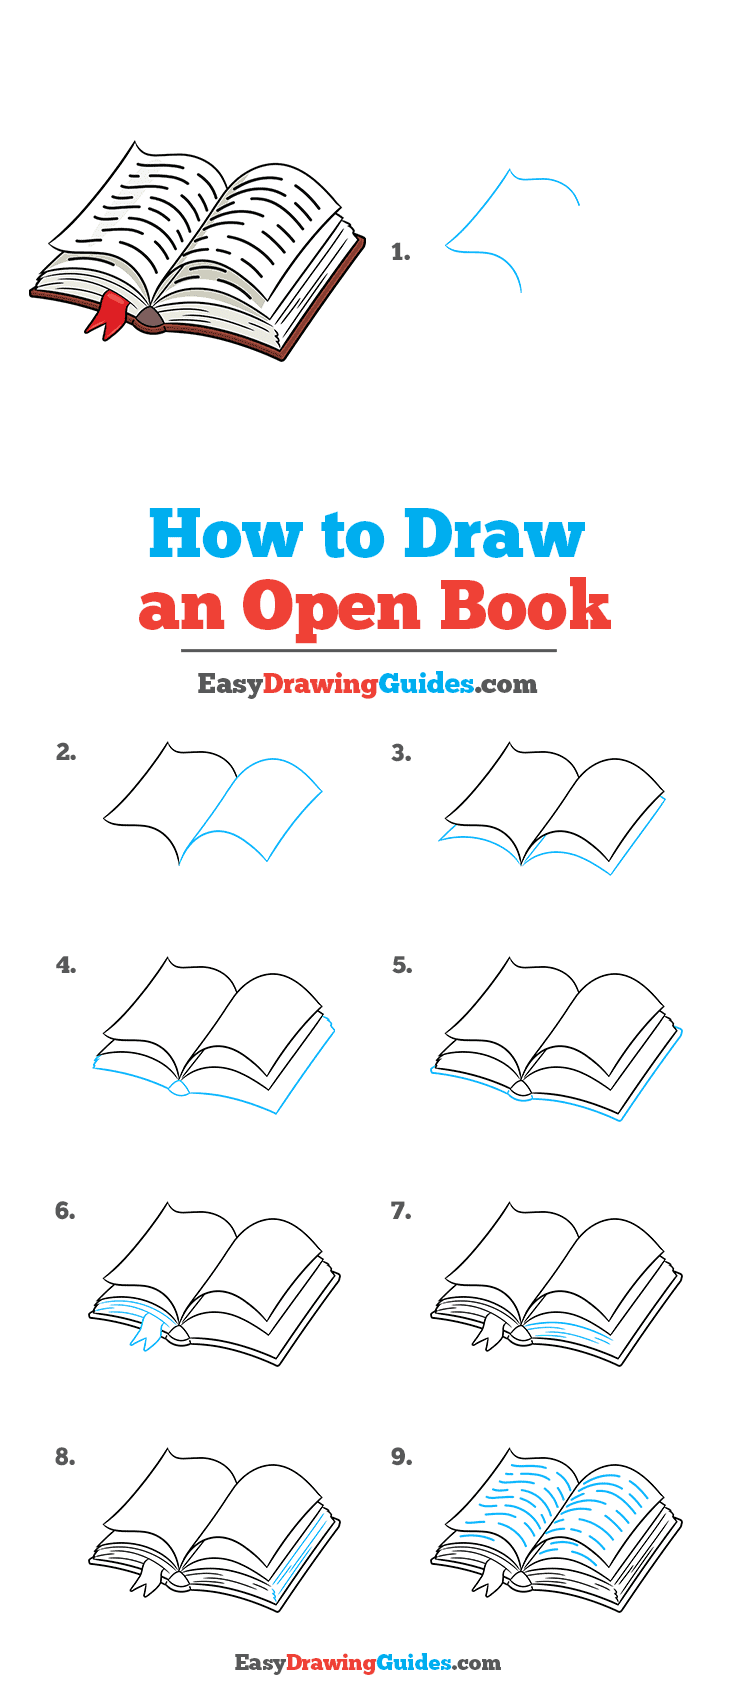 Open Book Drawing Easy : drawing, Really, Drawing, Tutorial